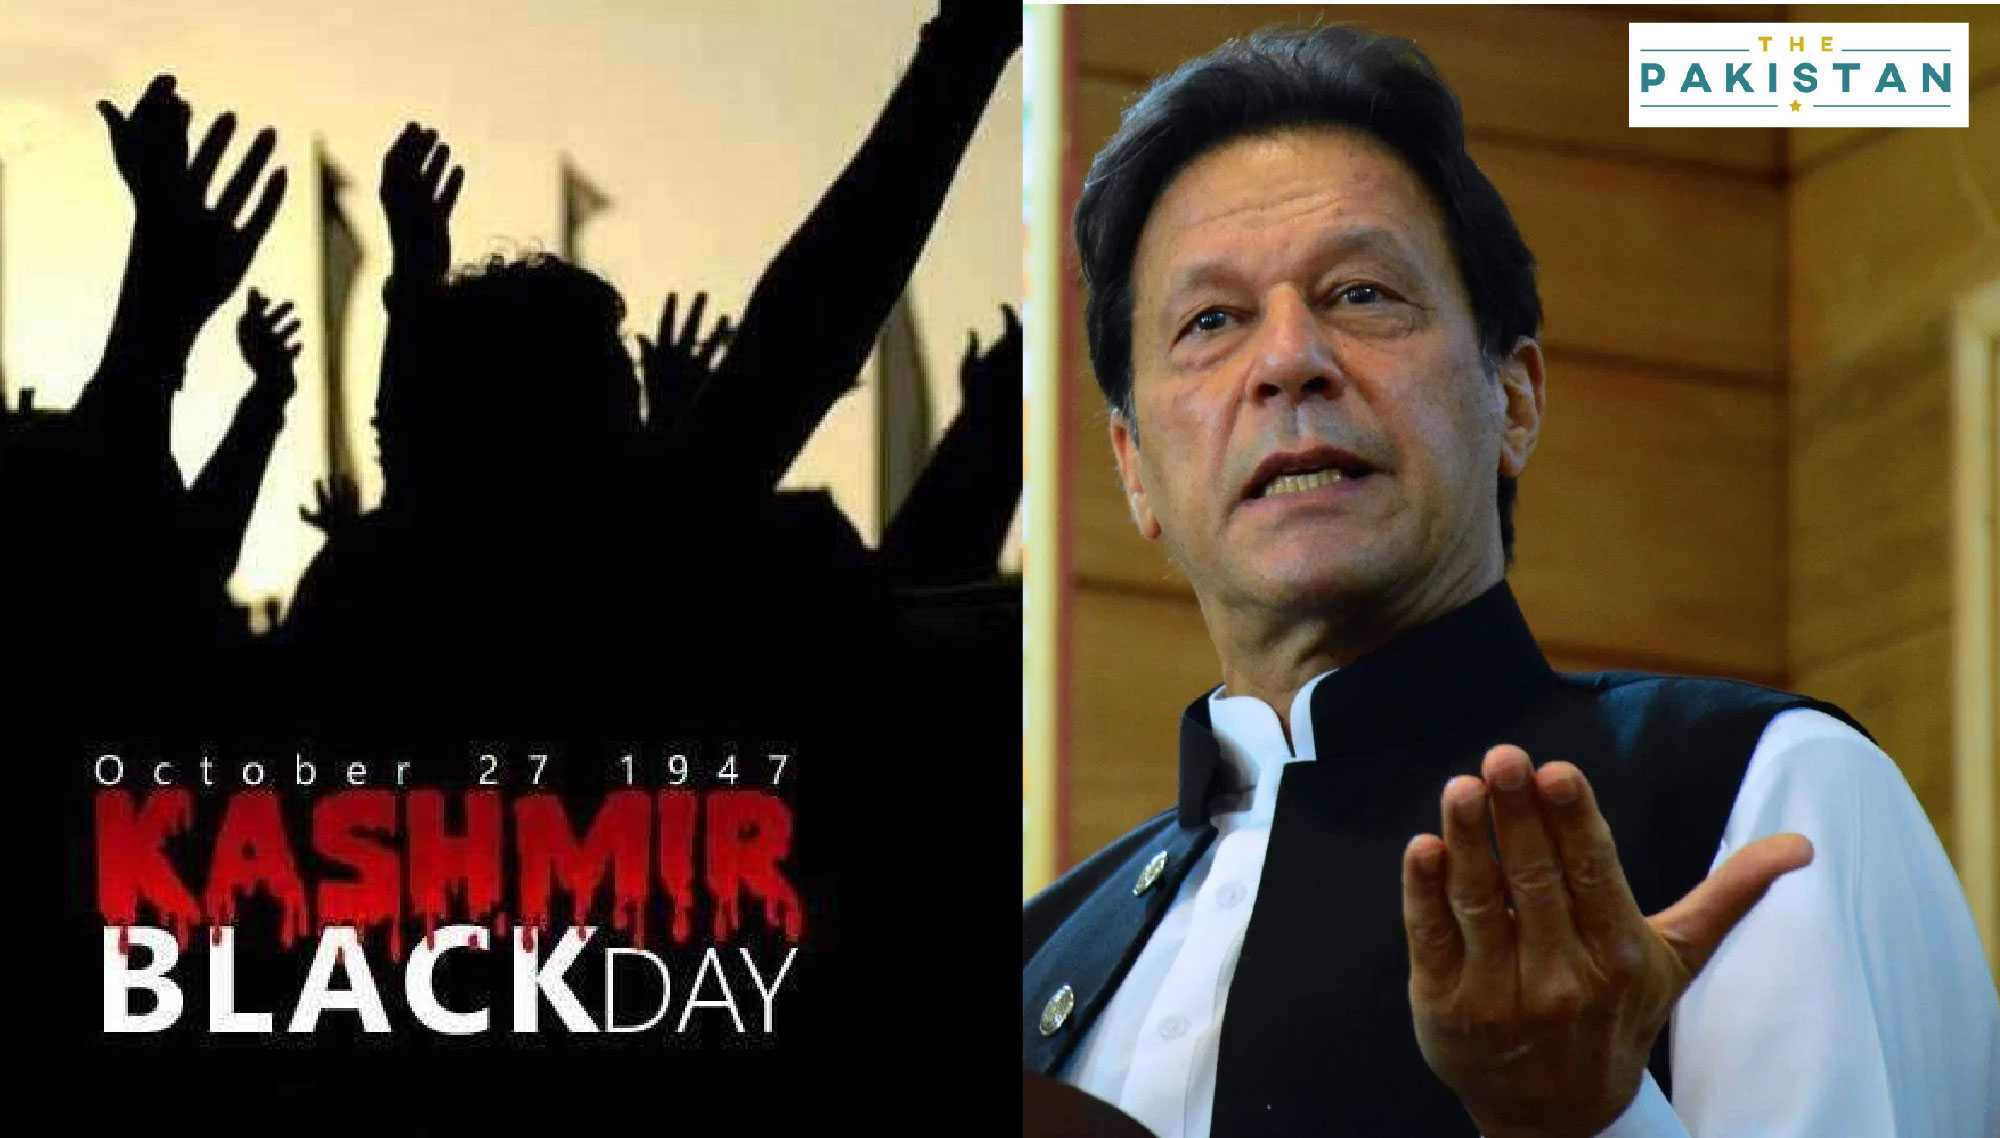 Black Day: Khan vows to support Kashmiris